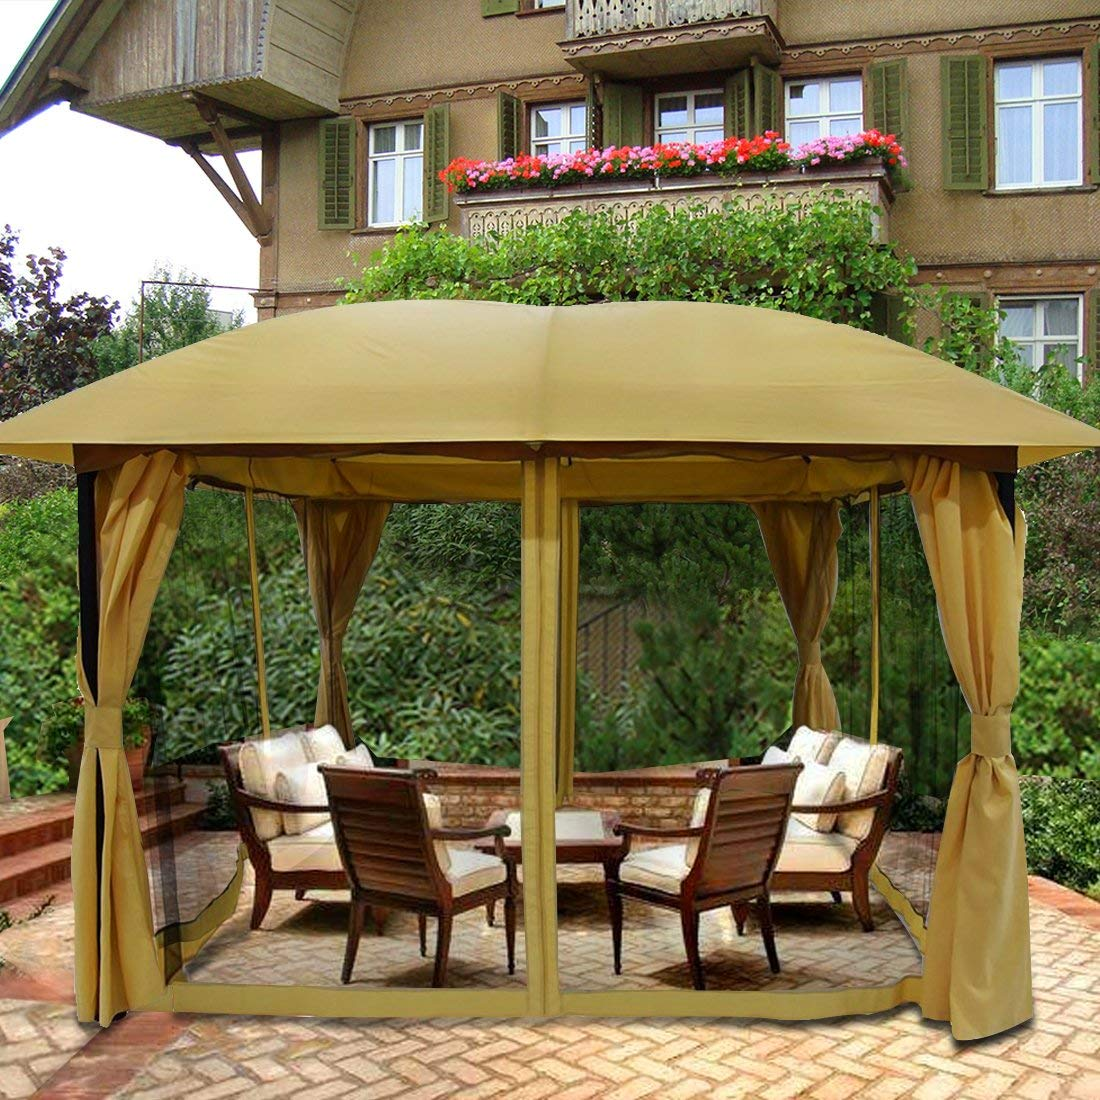 Merveilleux Product Image Quictent 12x12 Metal Gazebo Pergola With Mosquito Netting  Curtains Soft Top Canopy Screened Grill Gazebo For